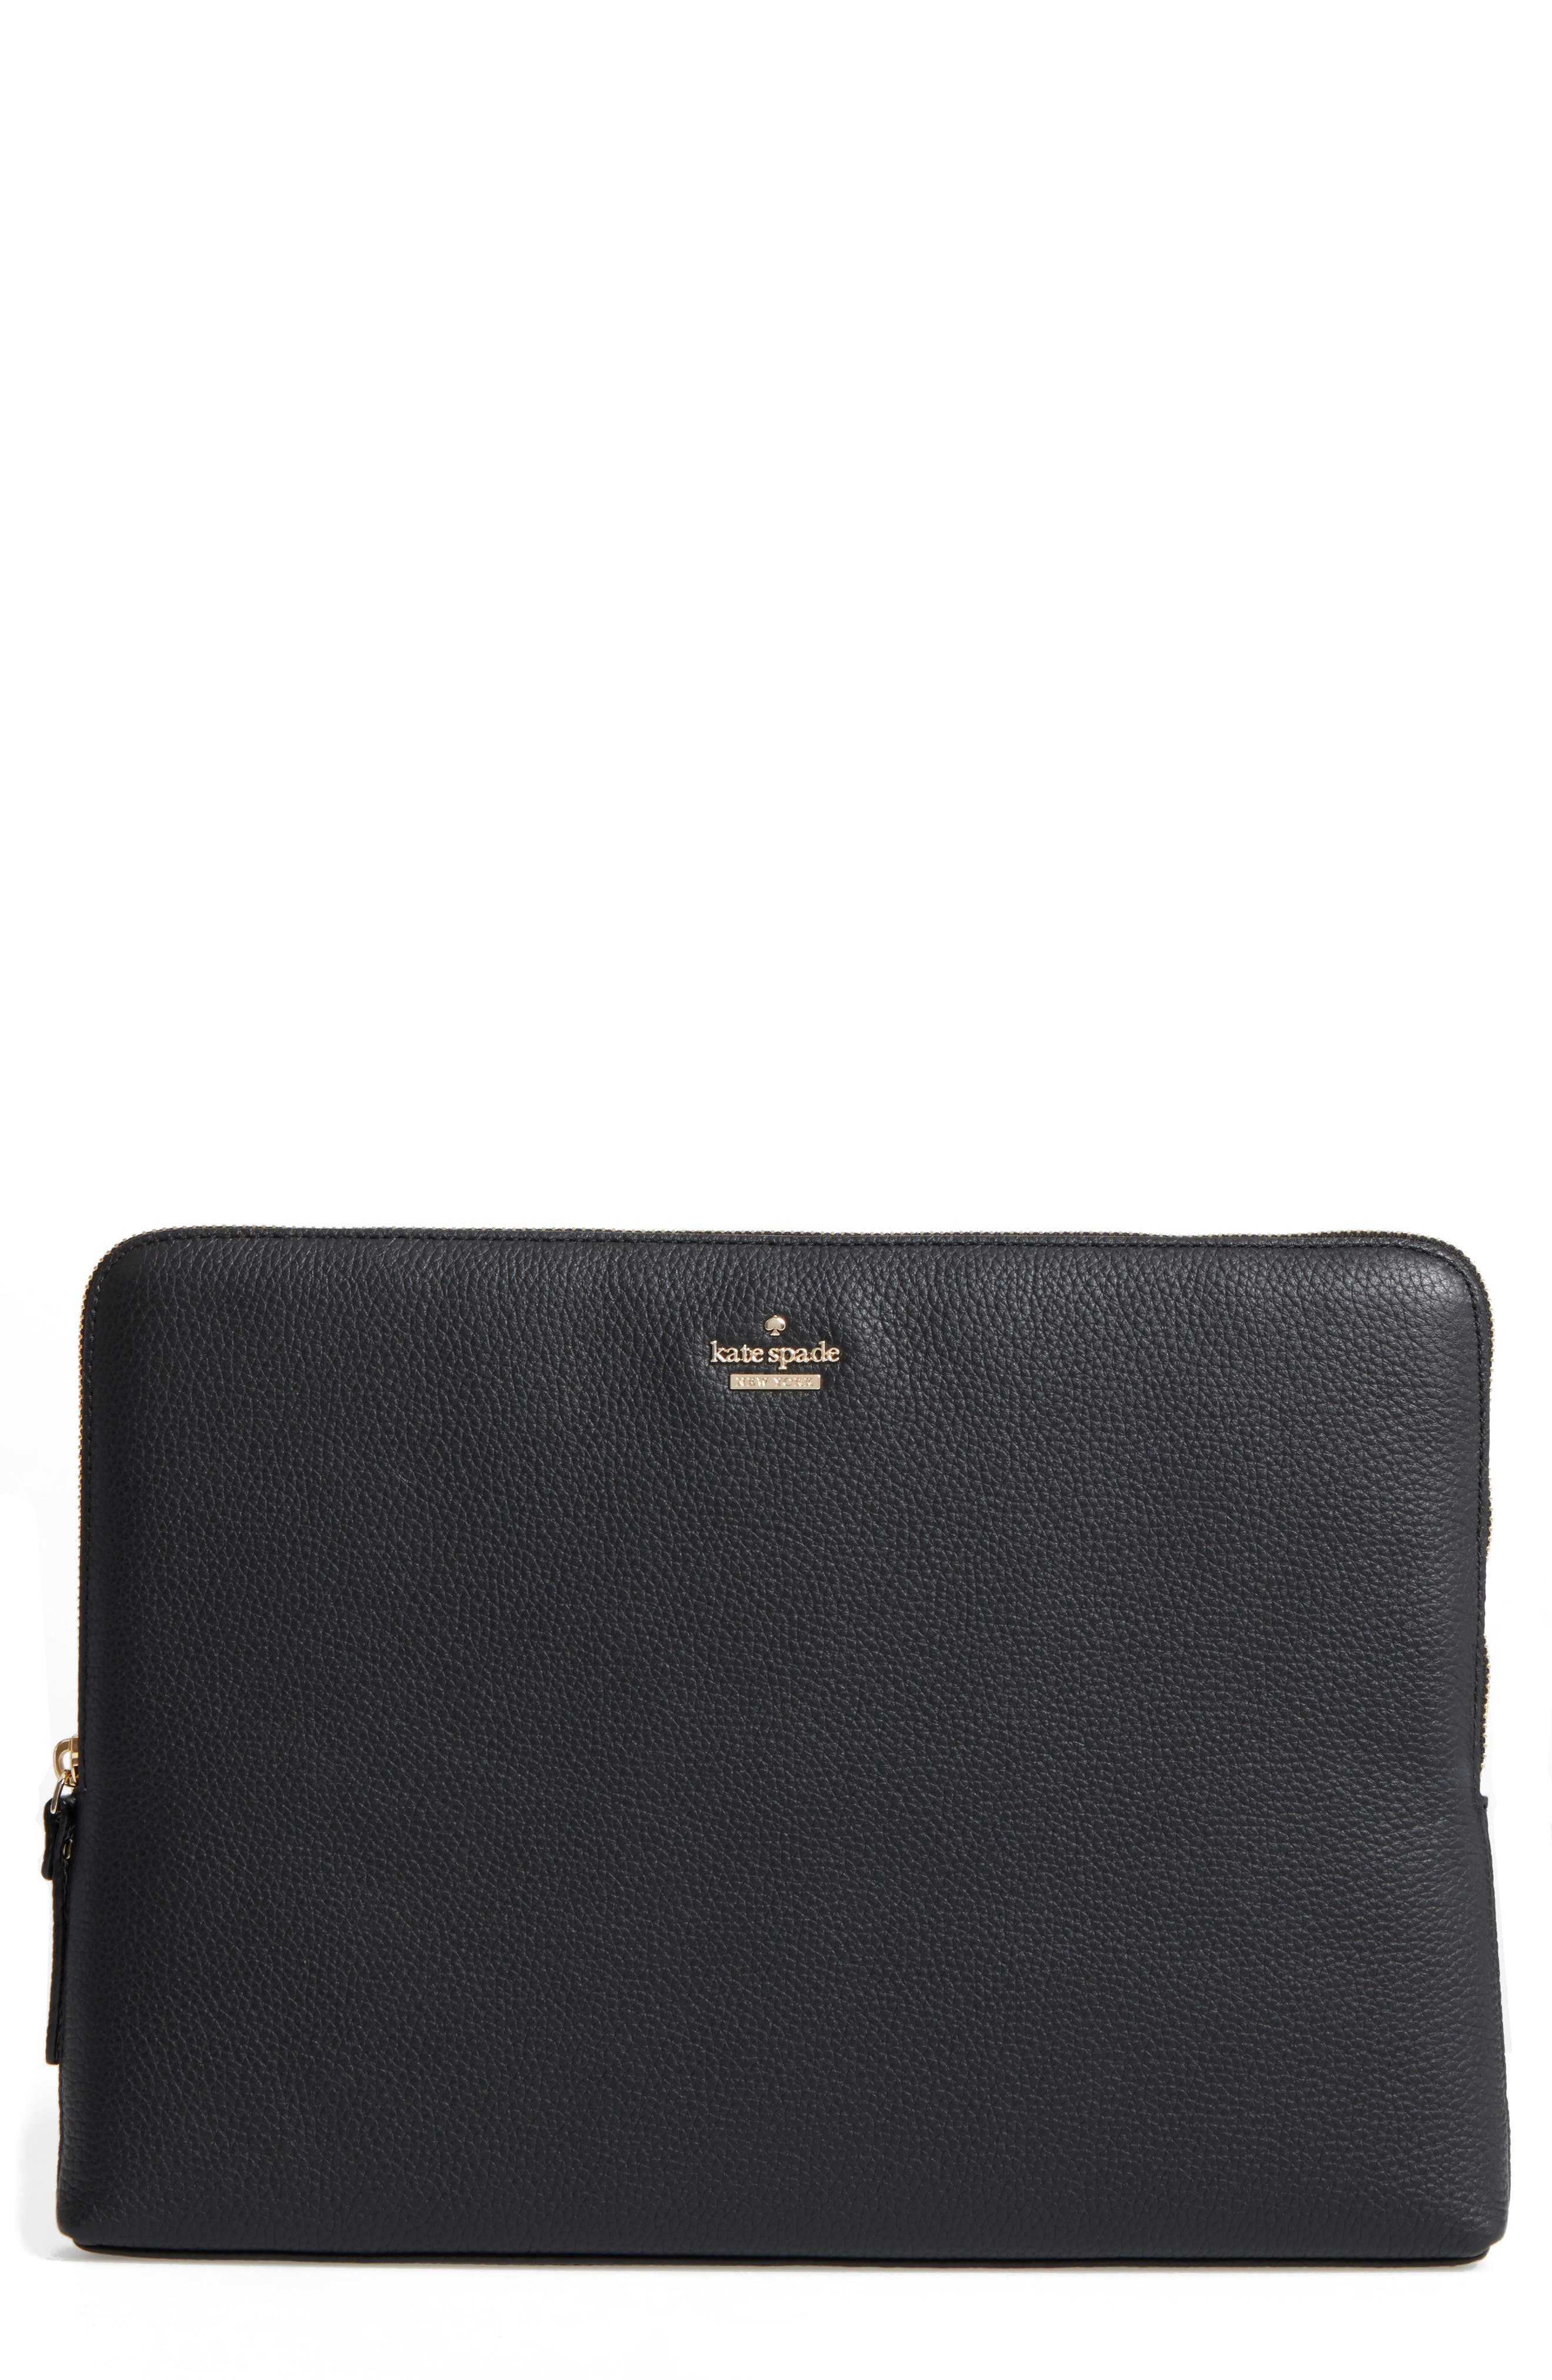 13-inch leather laptop sleeve,                             Main thumbnail 1, color,                             BLACK